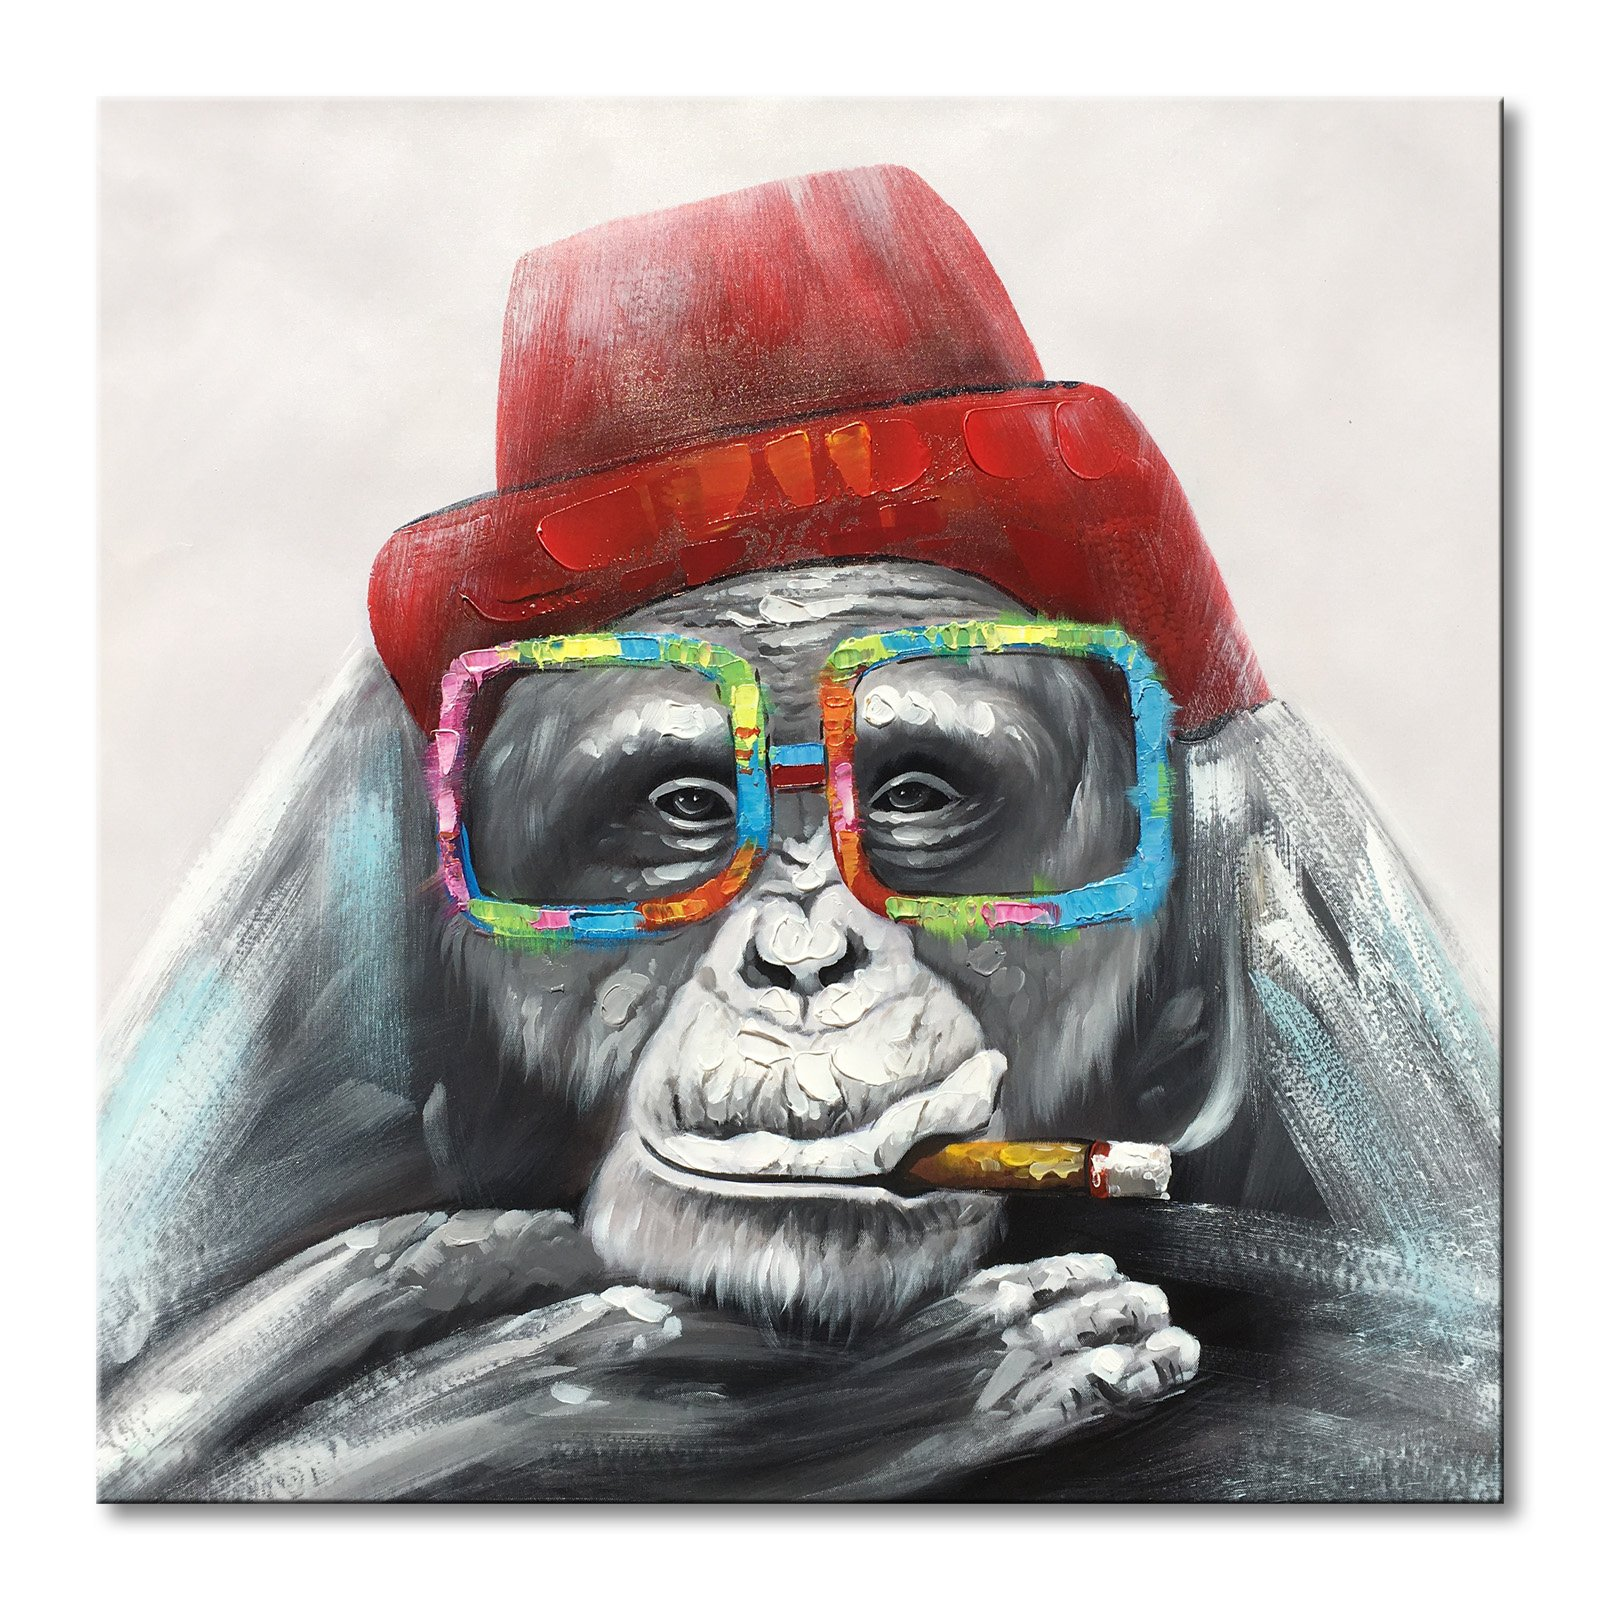 EVERFUN ART Everfun Framed Canvas Wall Art Gorilla Monkey In a Red Hat Handmade Animal Oil Painting Abstract Home Decor for Bedroom Ready to Hang 32x32